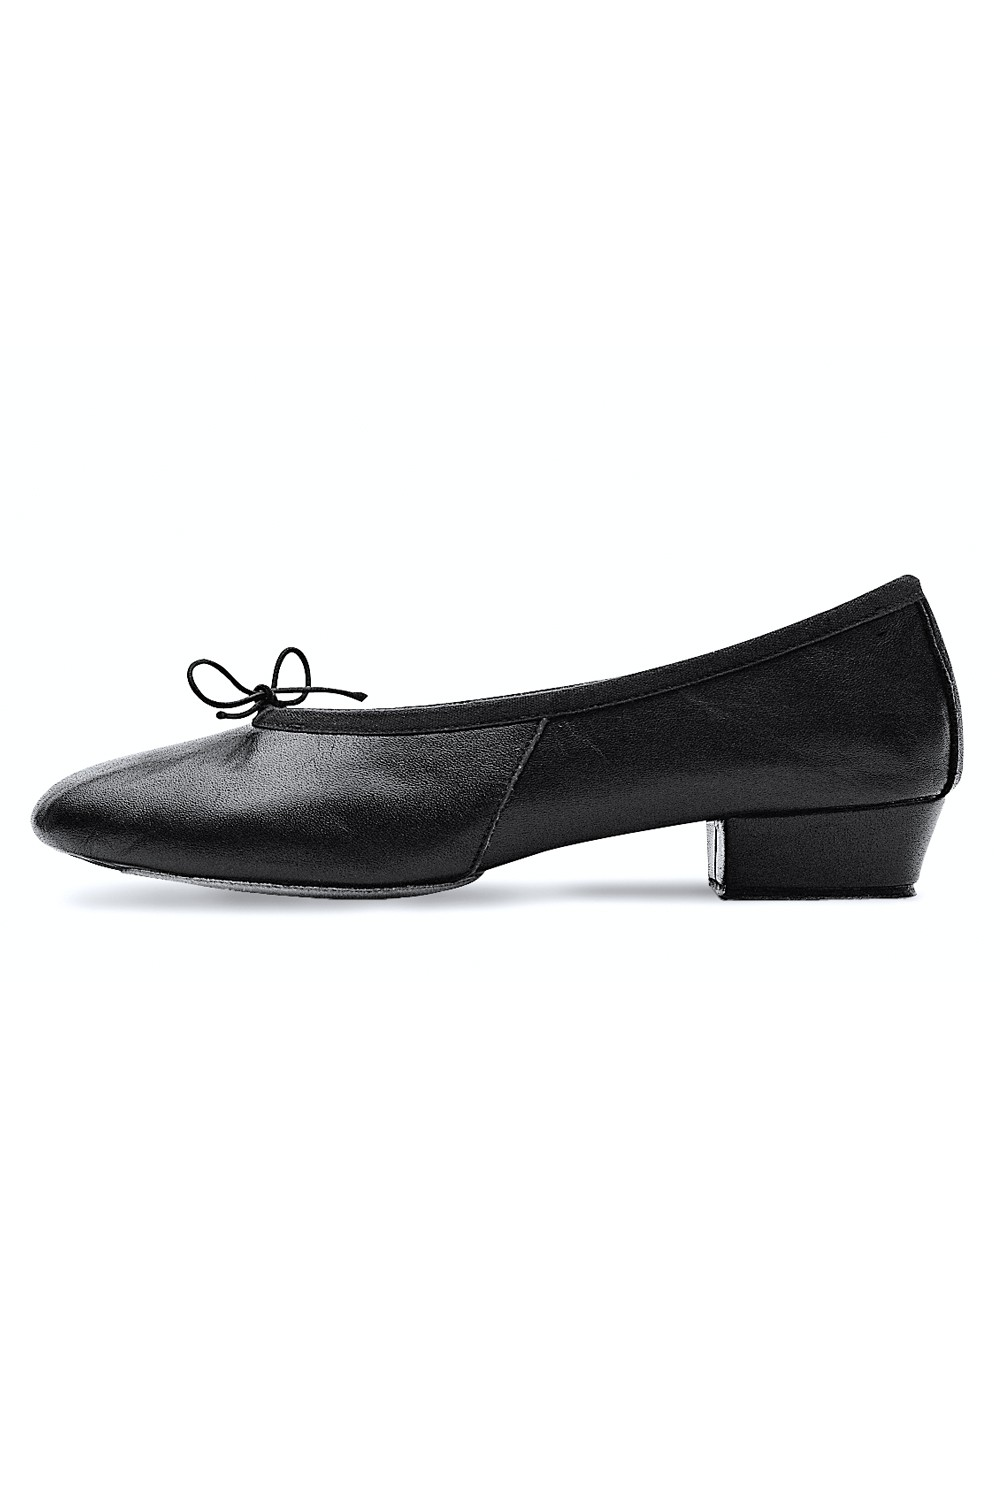 Paris Teaching Ballet Shoes Women's Teaching Shoes